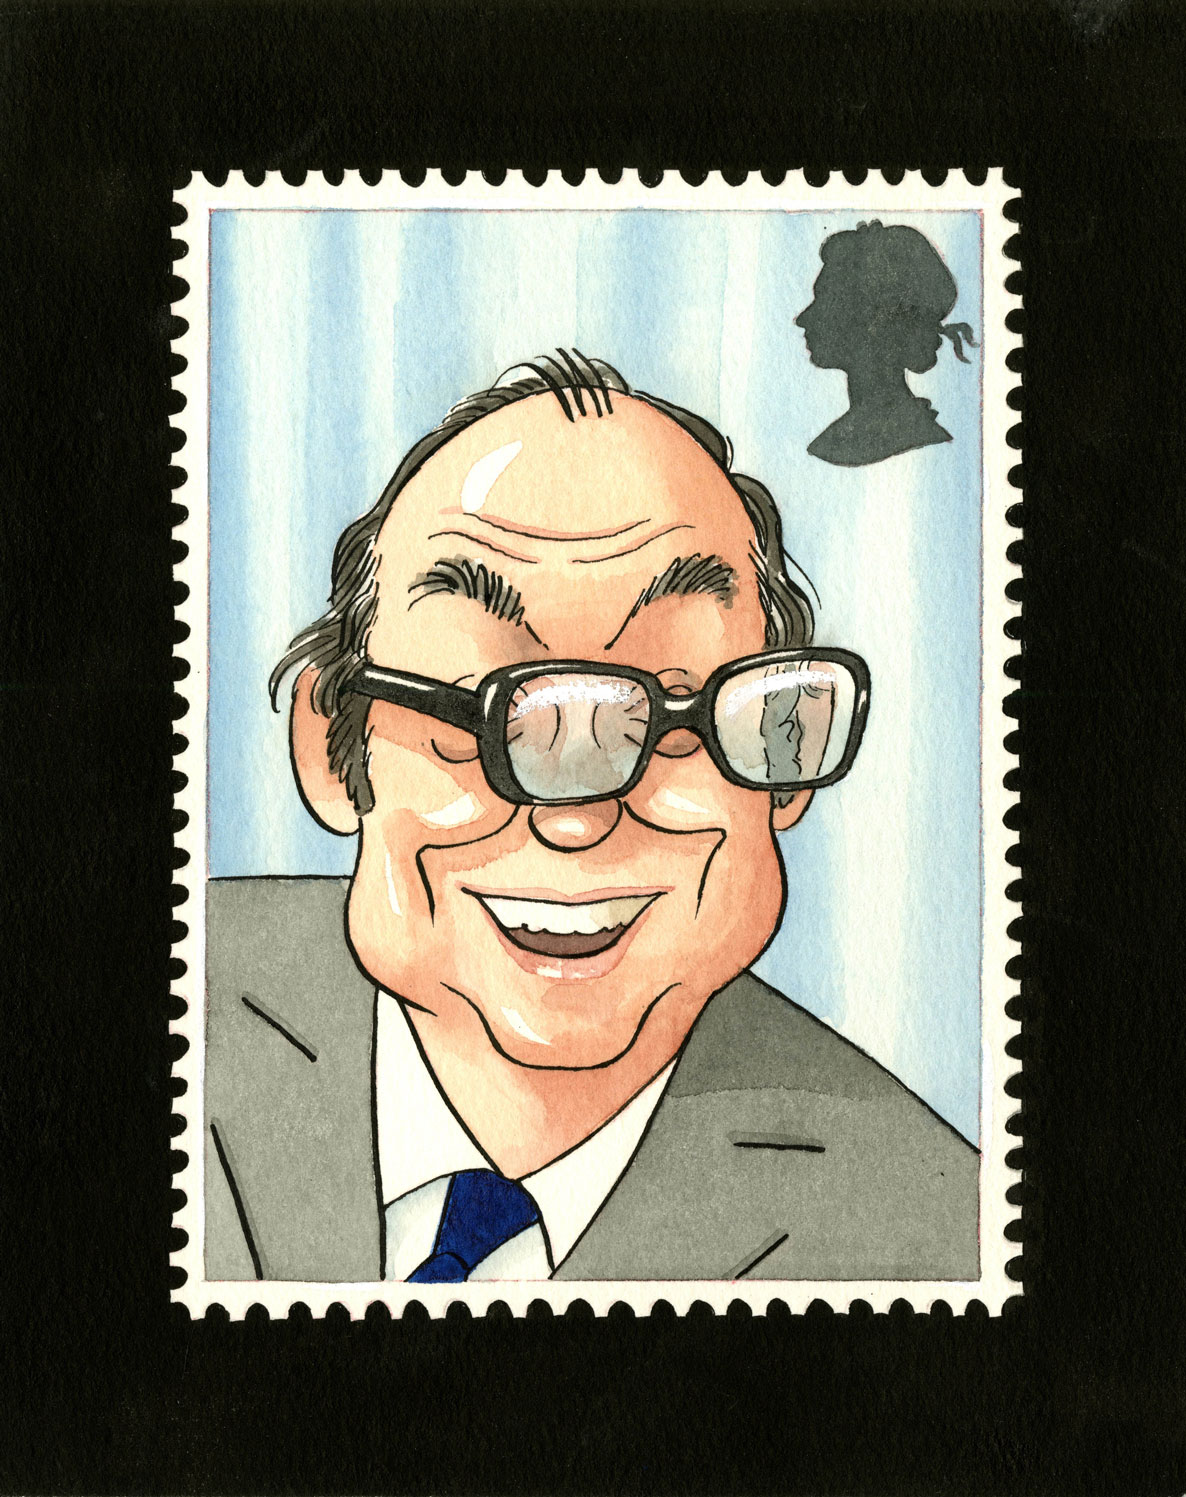 Painting by Roger Brookes of Eric Morecombe with his glasses skewed.